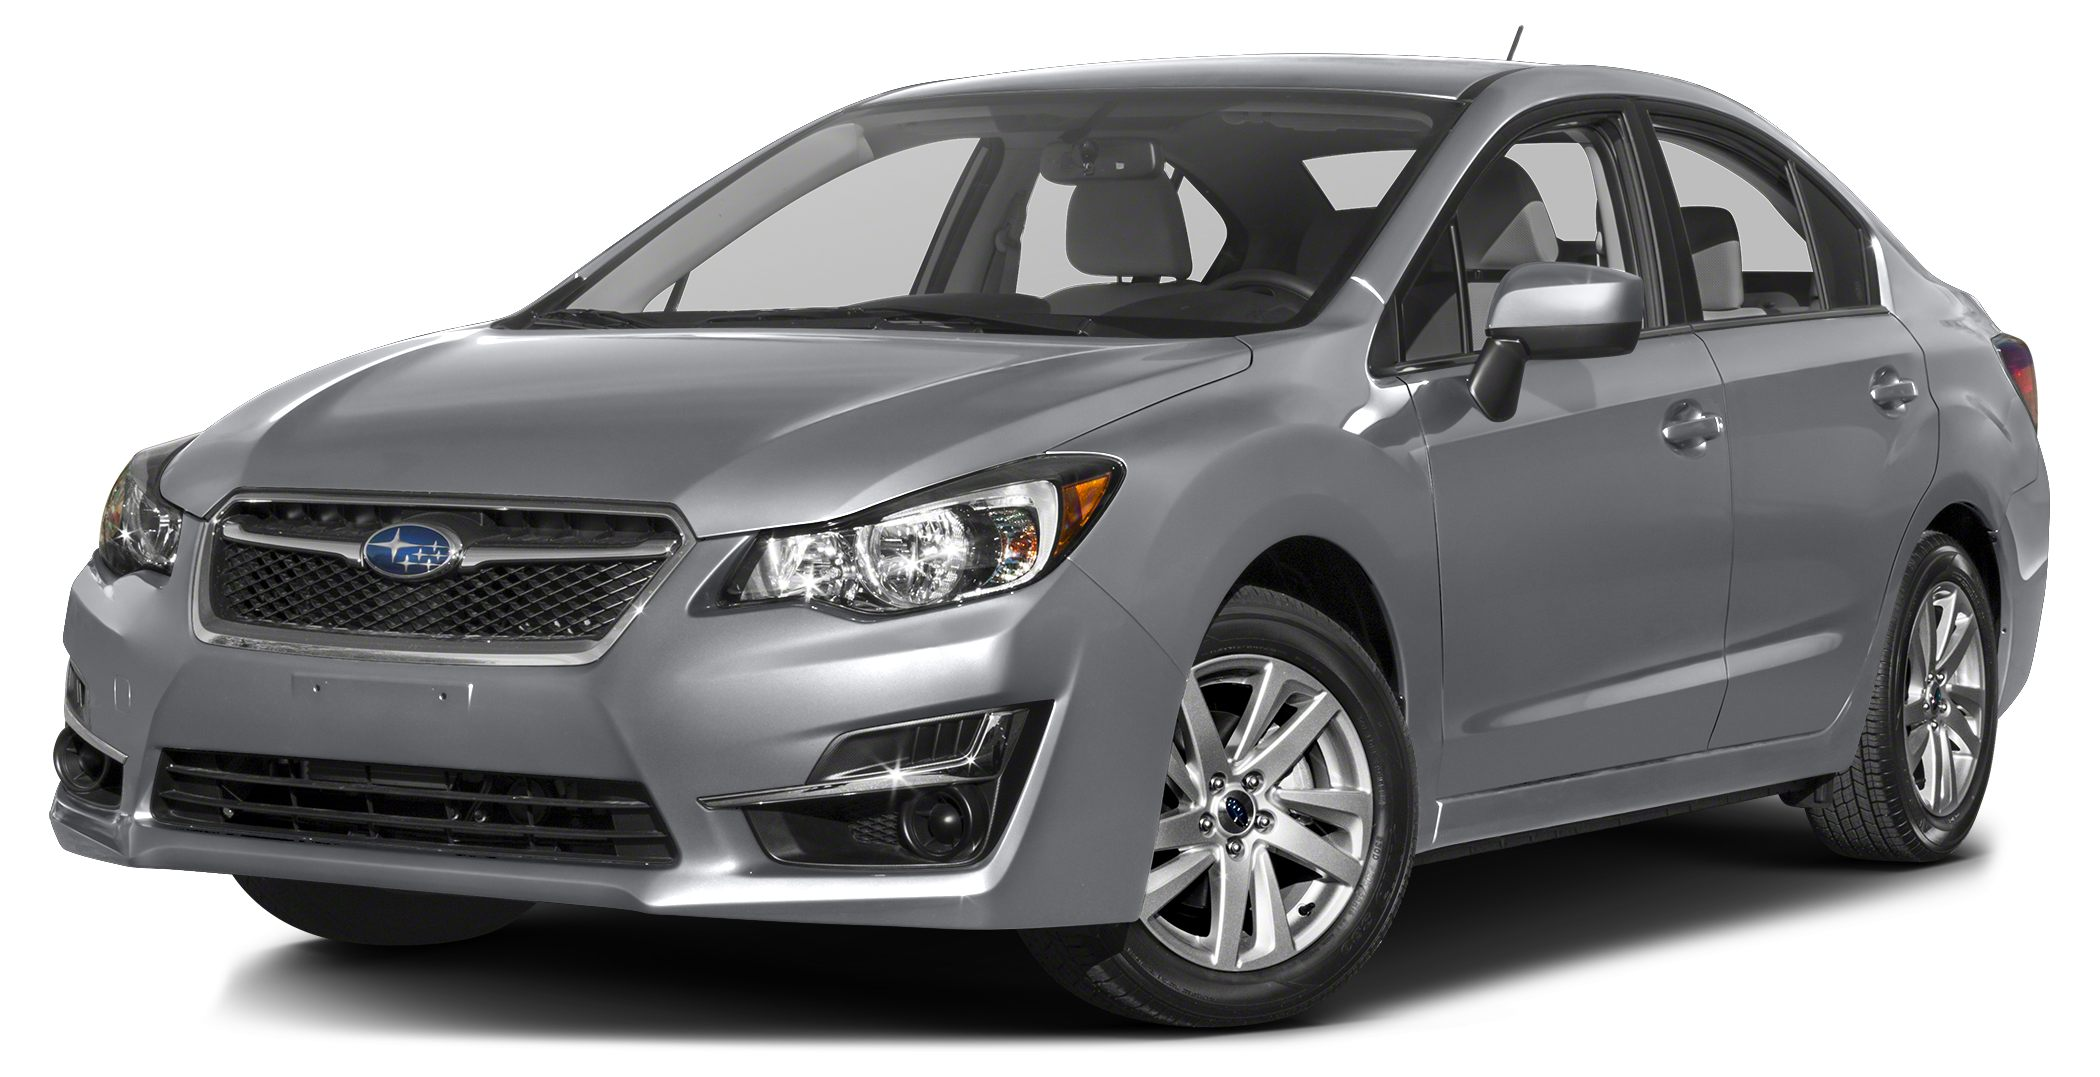 2015 Subaru Impreza 20i WE SELL OUR VEHICLES AT WHOLESALE PRICES AND STAND BEHIND OUR CARS